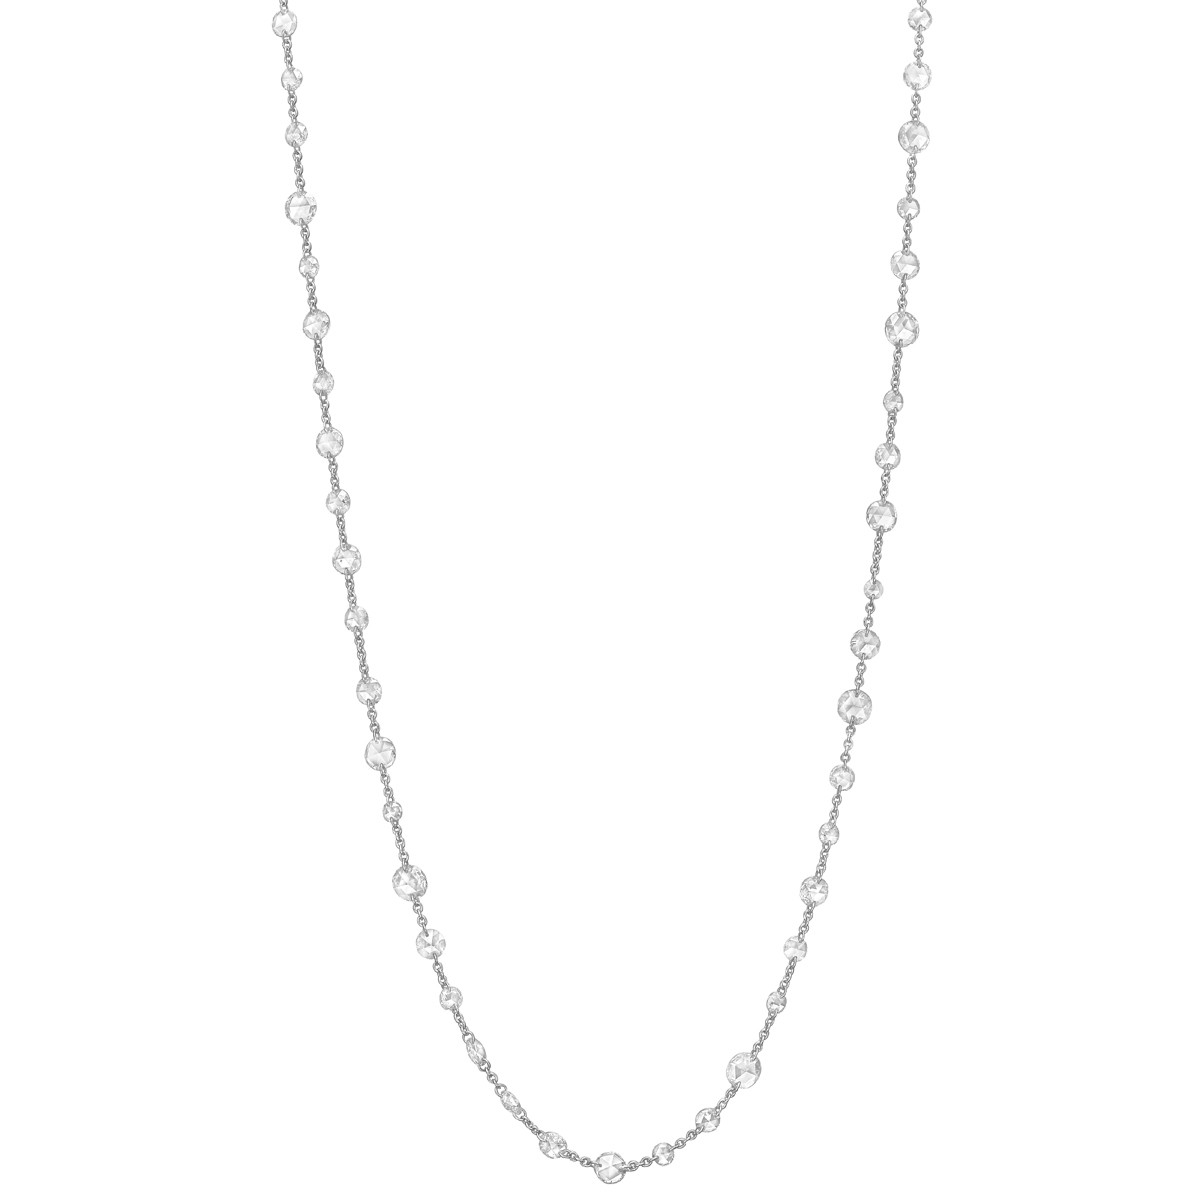 Rose-Cut Diamond Chain Long Necklace (11.12 ct tw)